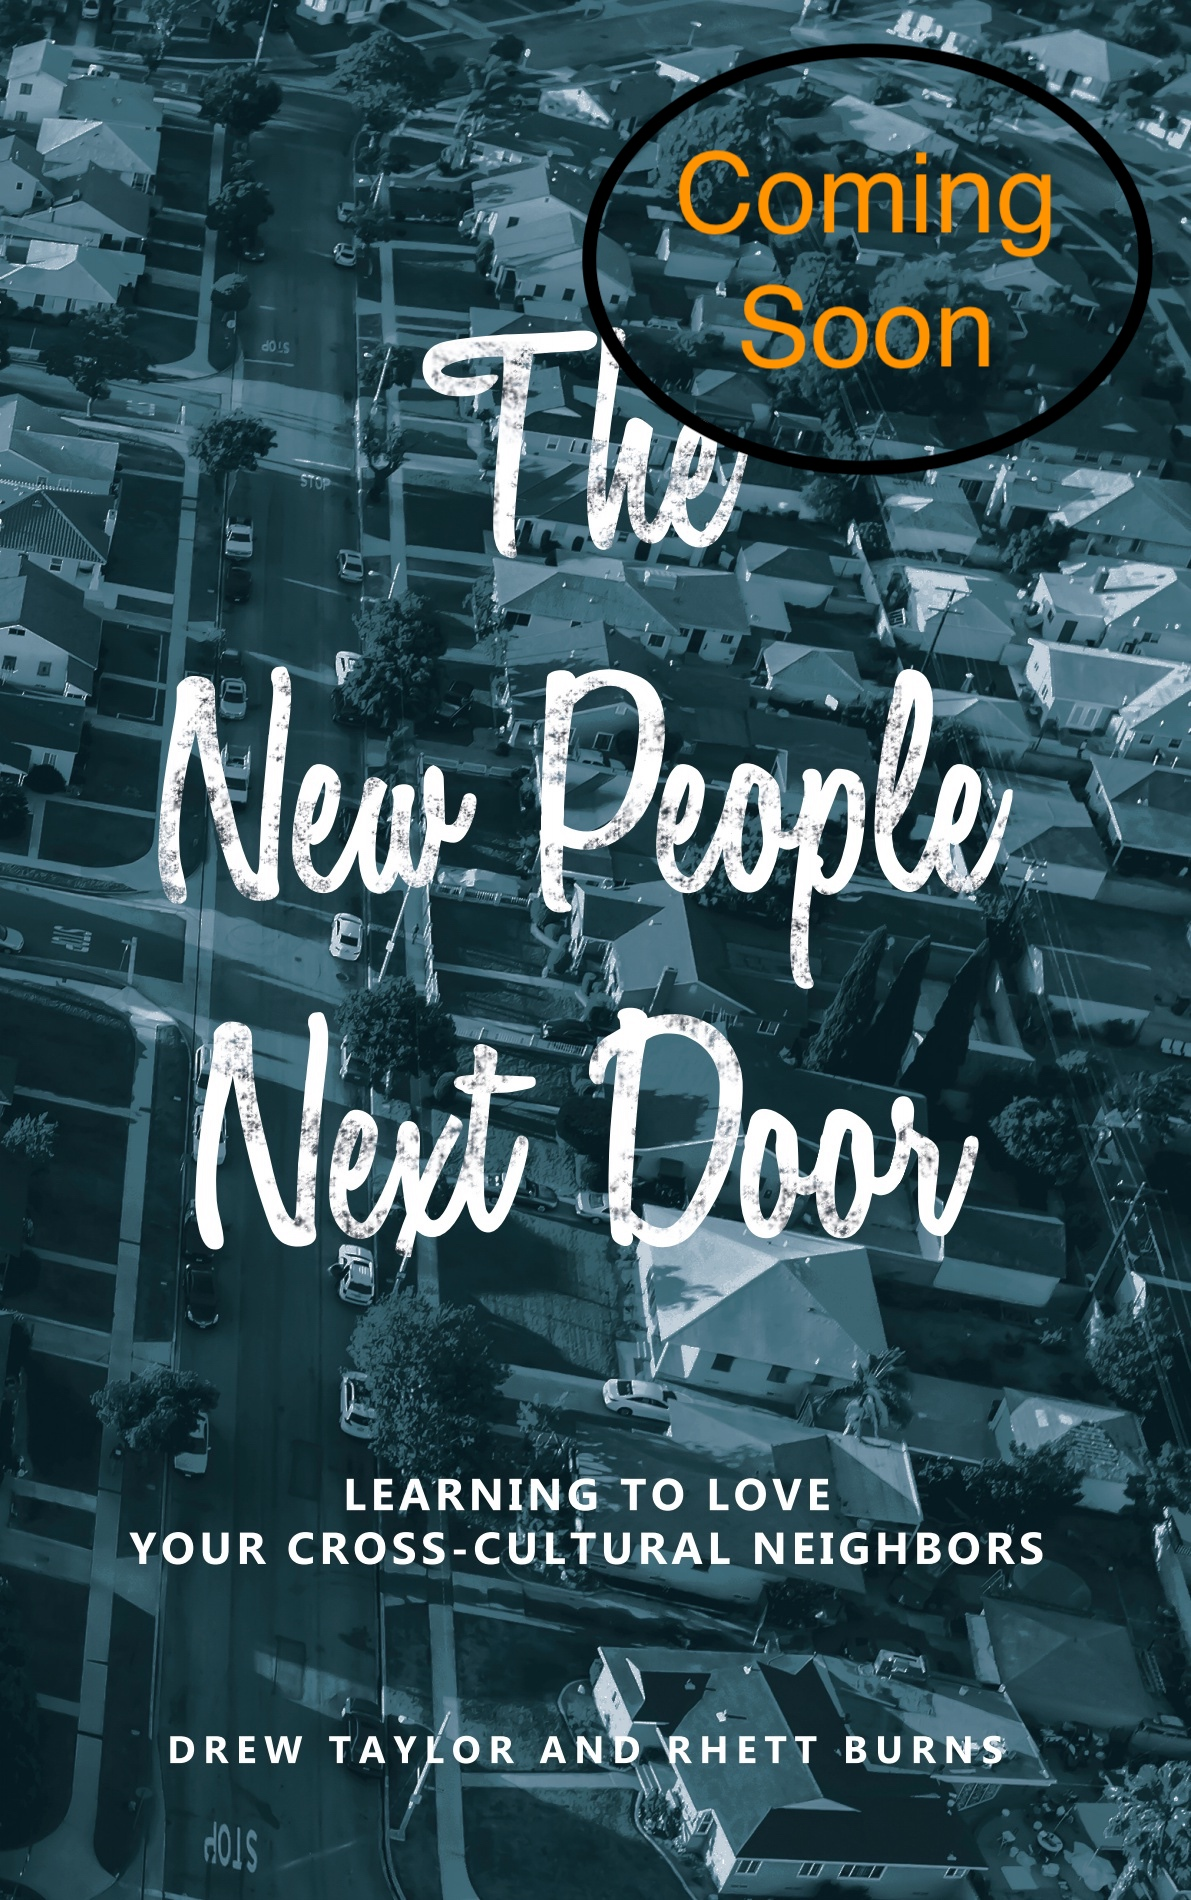 Book Notice: The New People Next Door